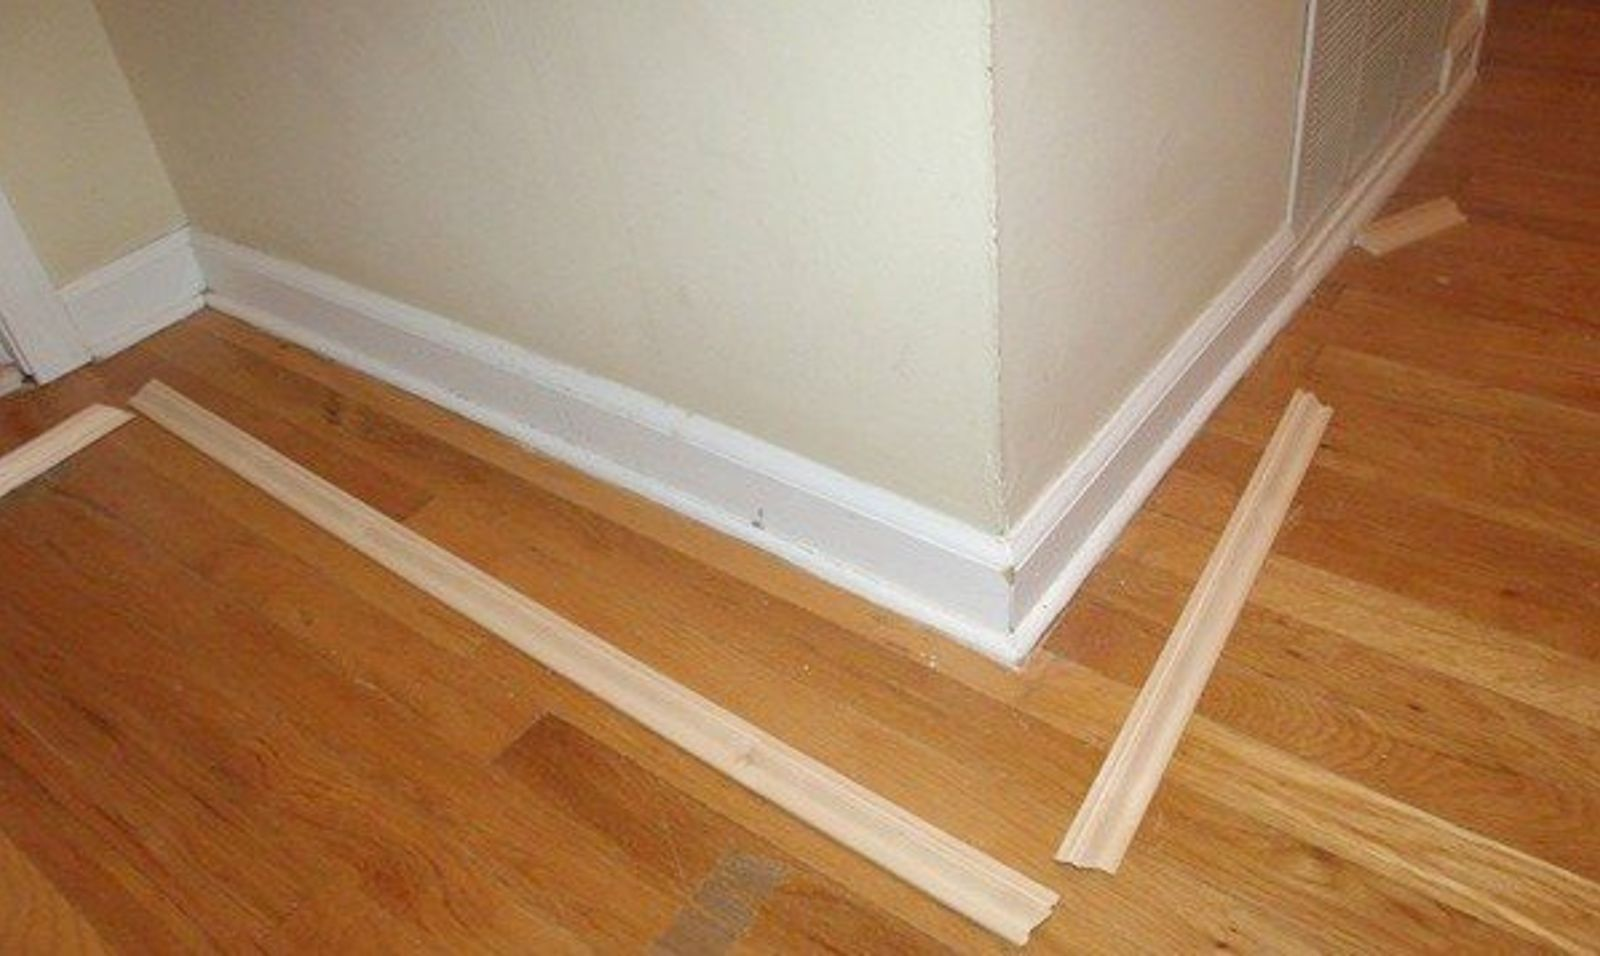 9 Tricks to Turn Builder Grade Baseboards Into Custom Made Beauties | Hometalk